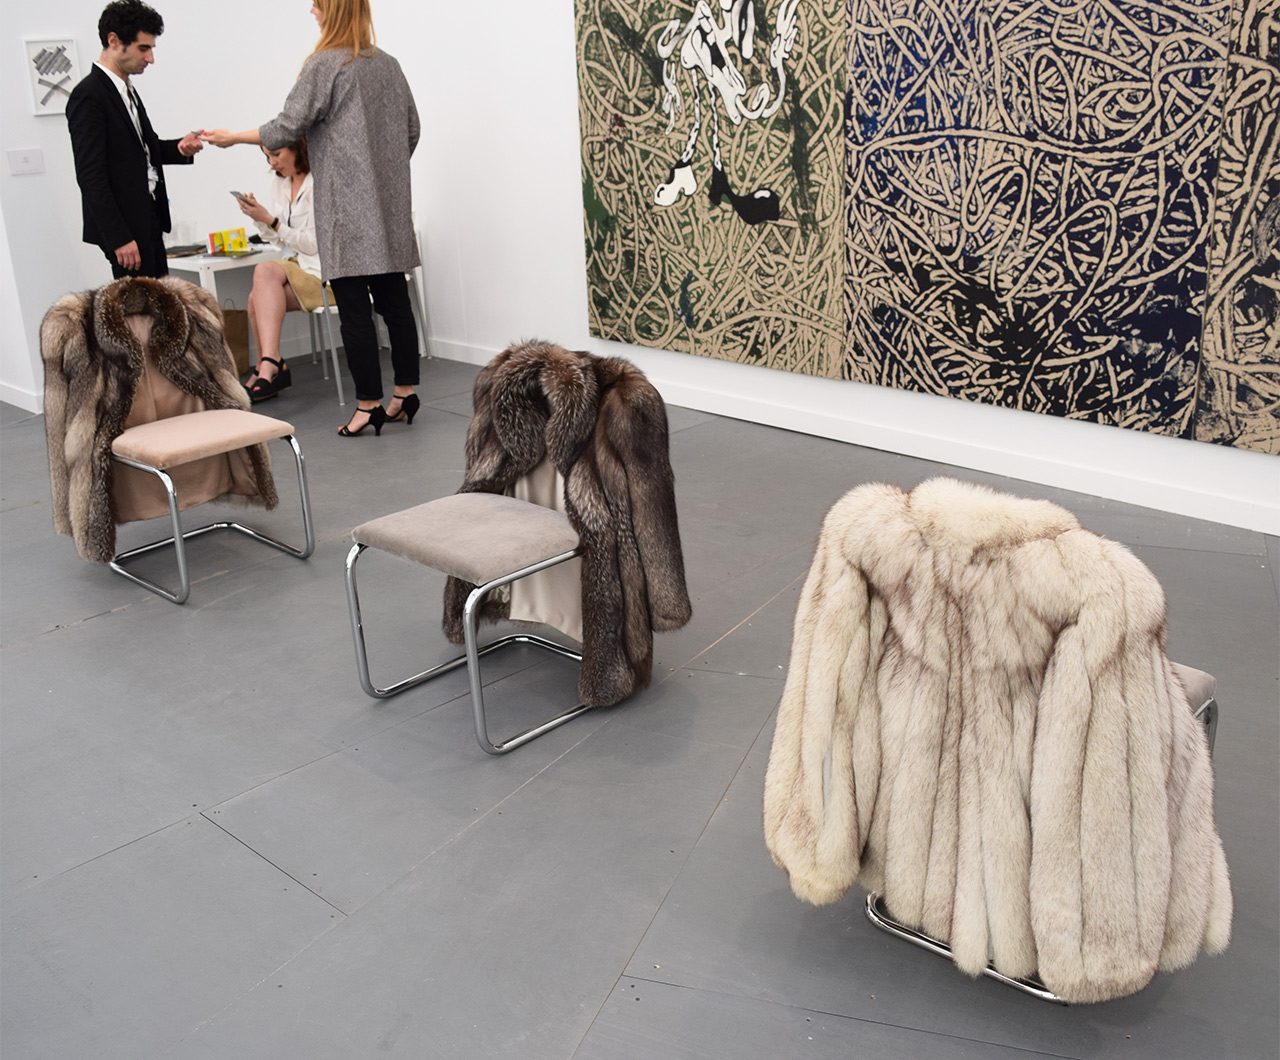 Look Before You Sit At Frieze New York the Seats Are All